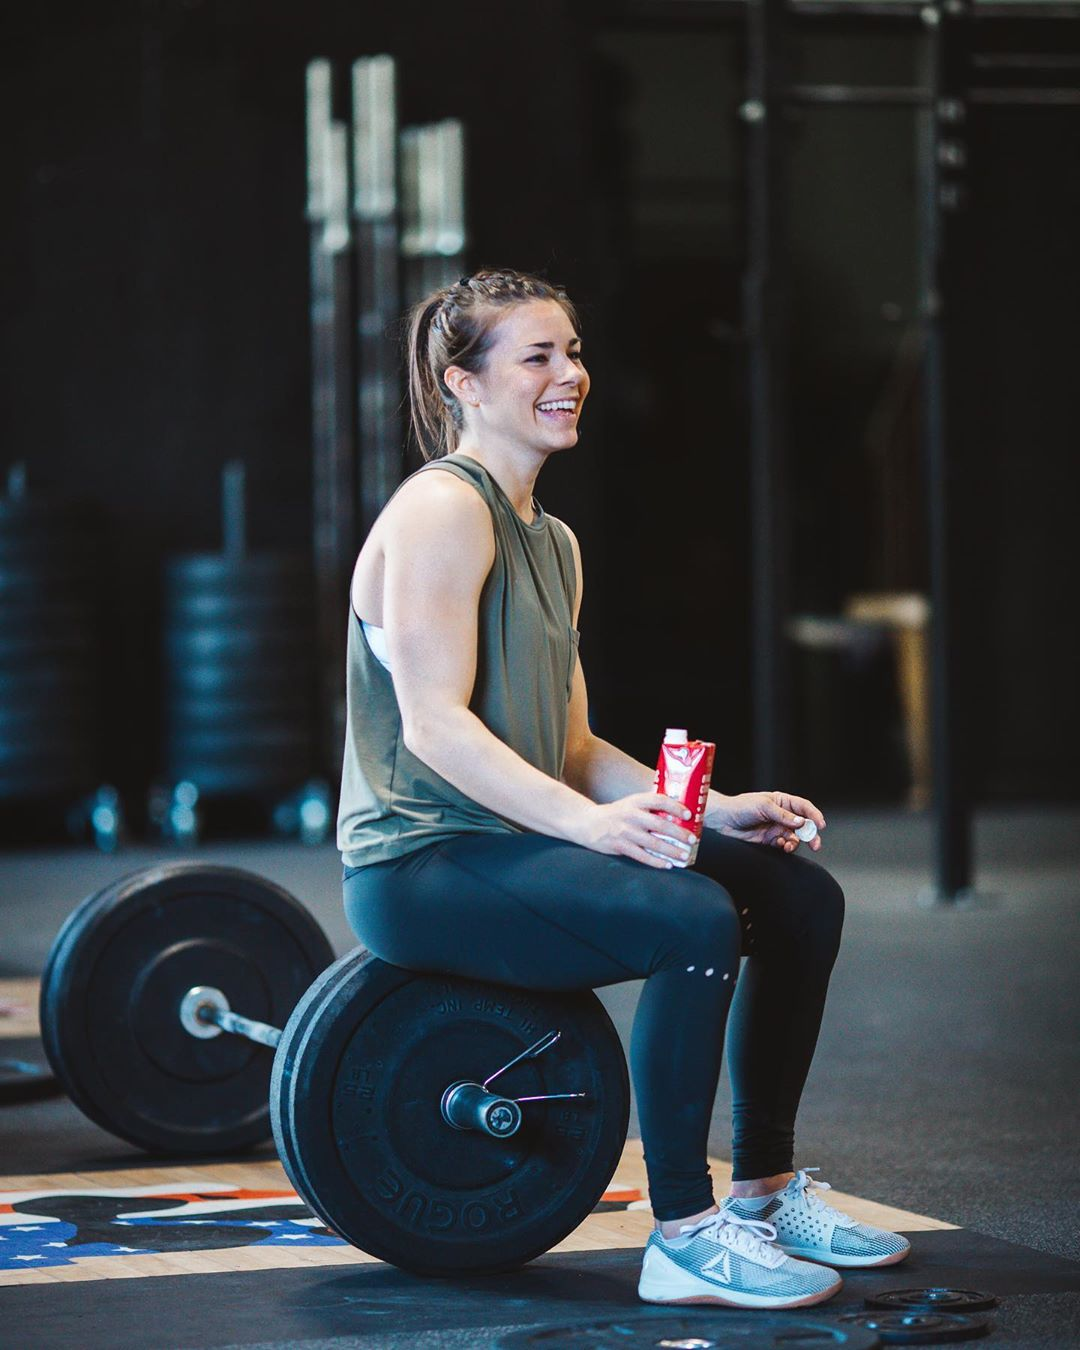 Julie Foucher-Urcuyo